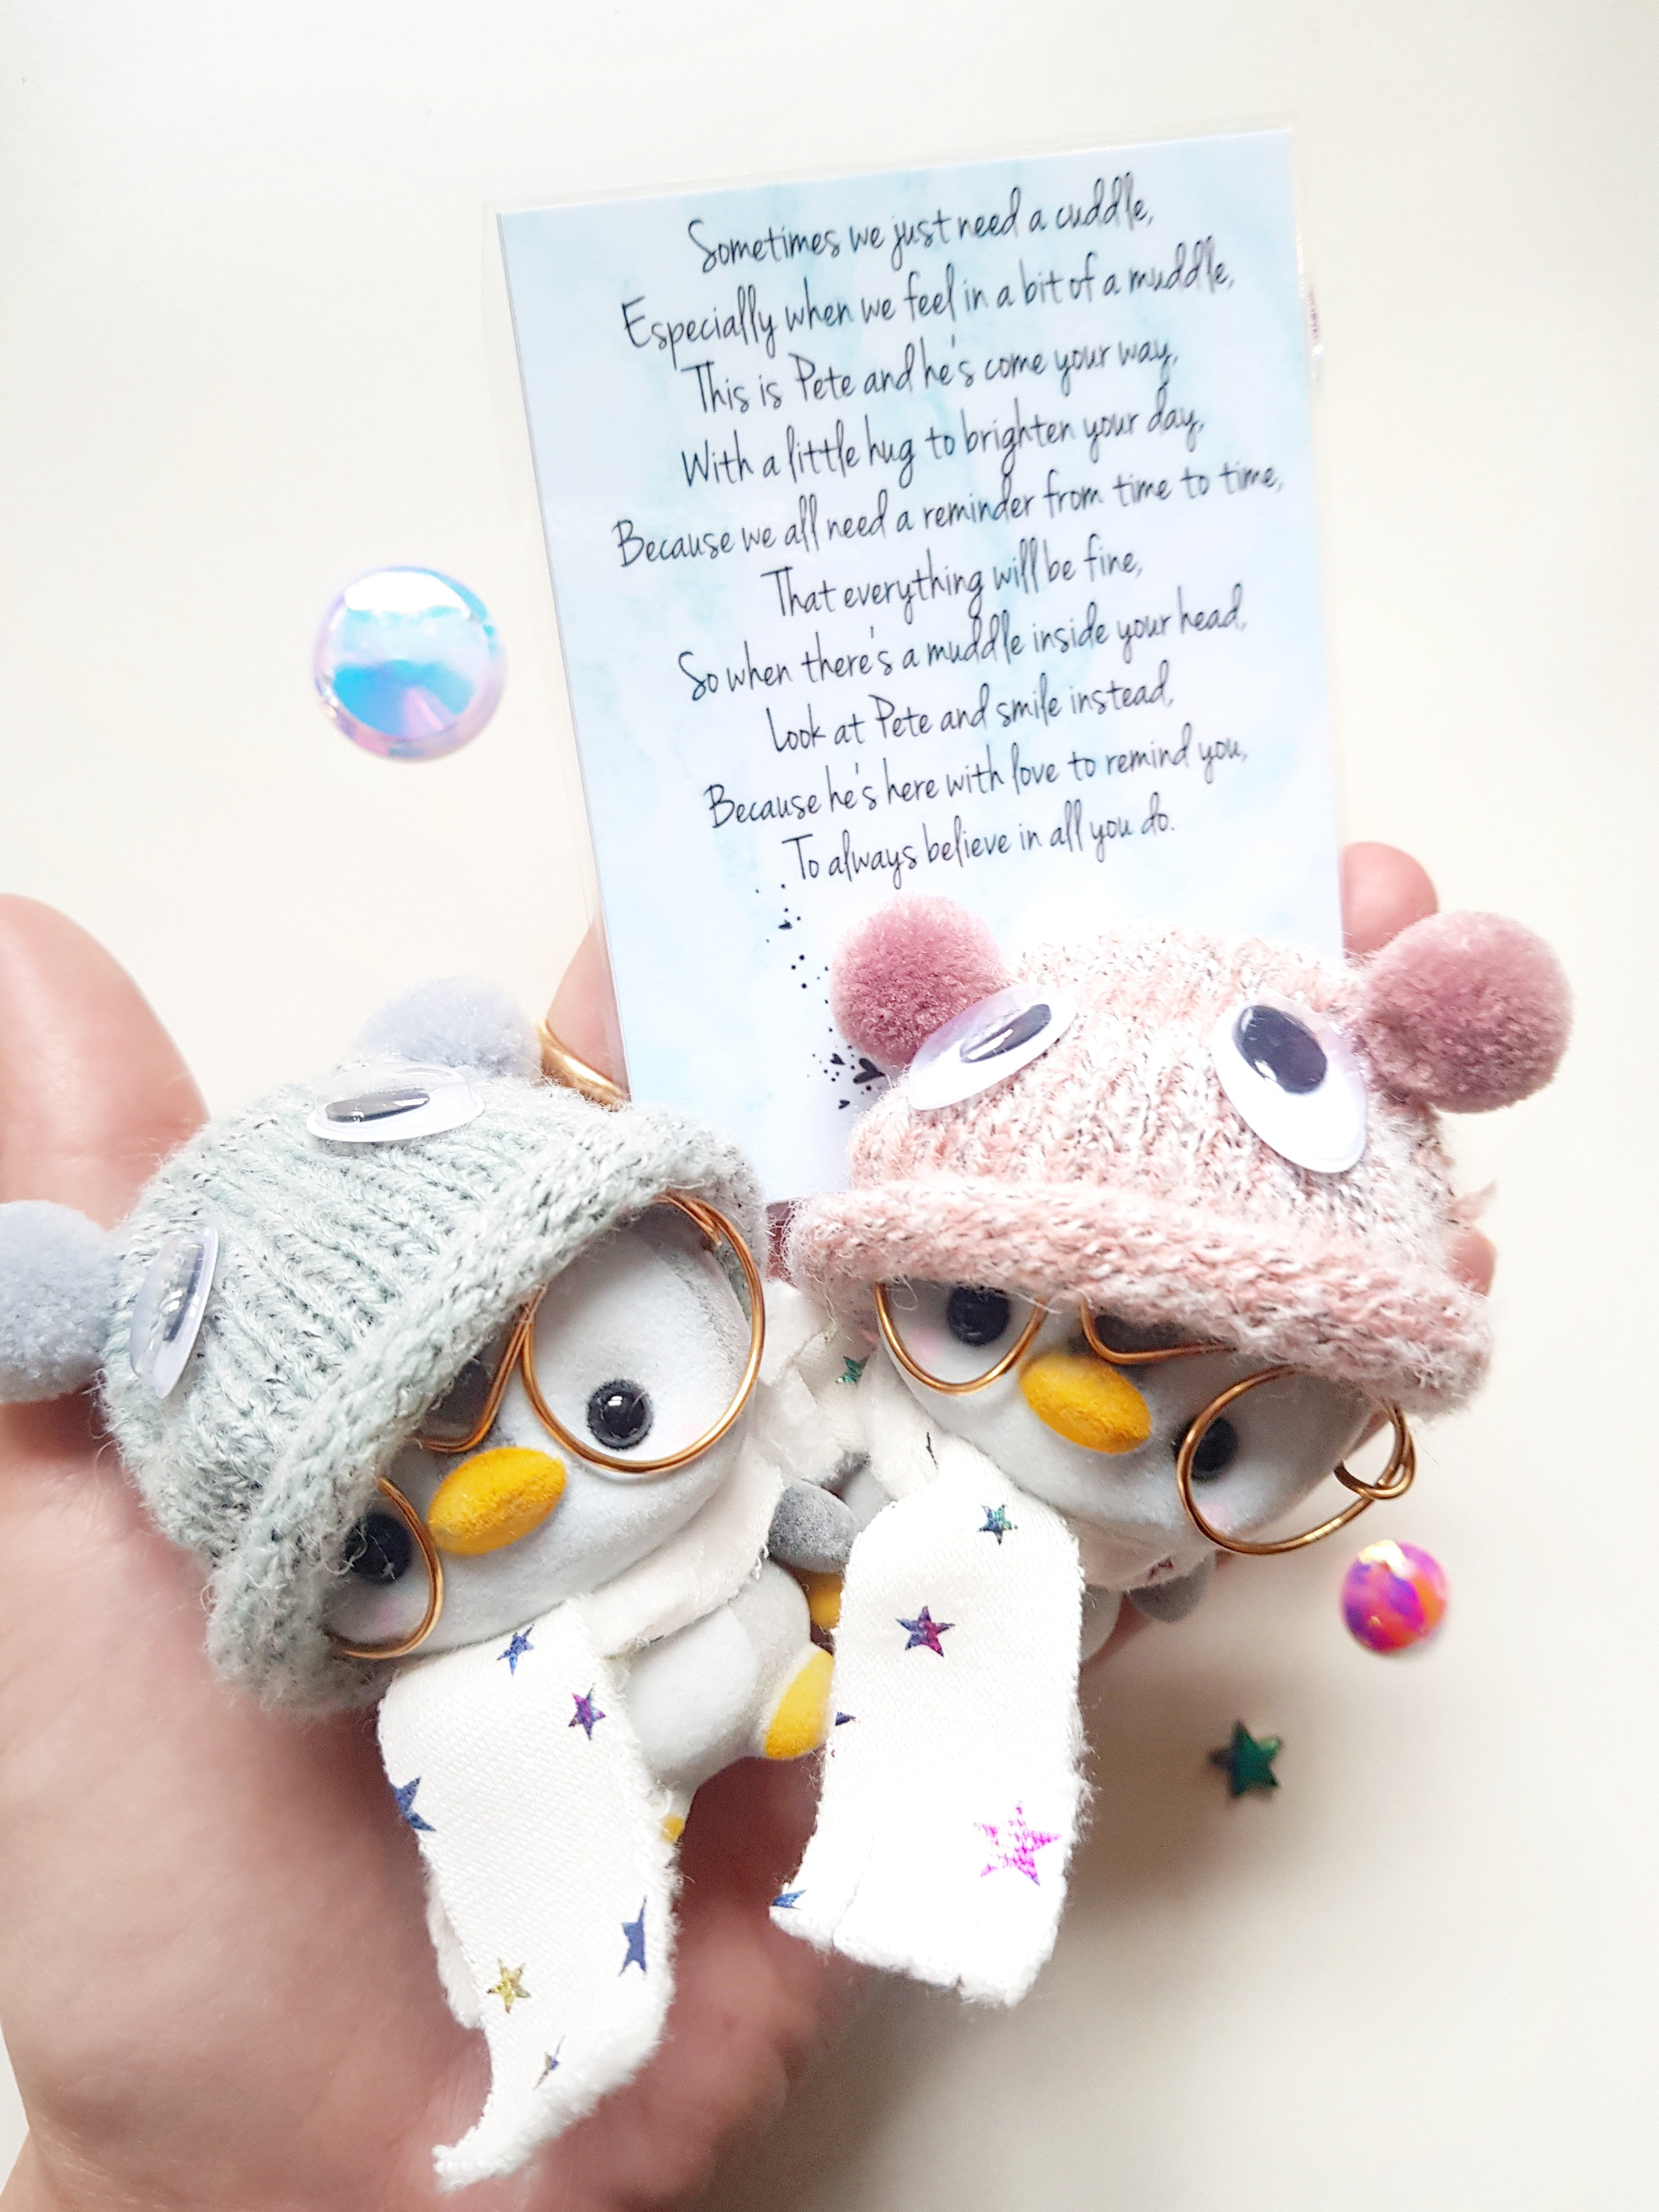 LIMITED EDITION - Pete The Penguin Goggly Eyes Bobble Hat!- Believe In You! - Little Happy Thoughts